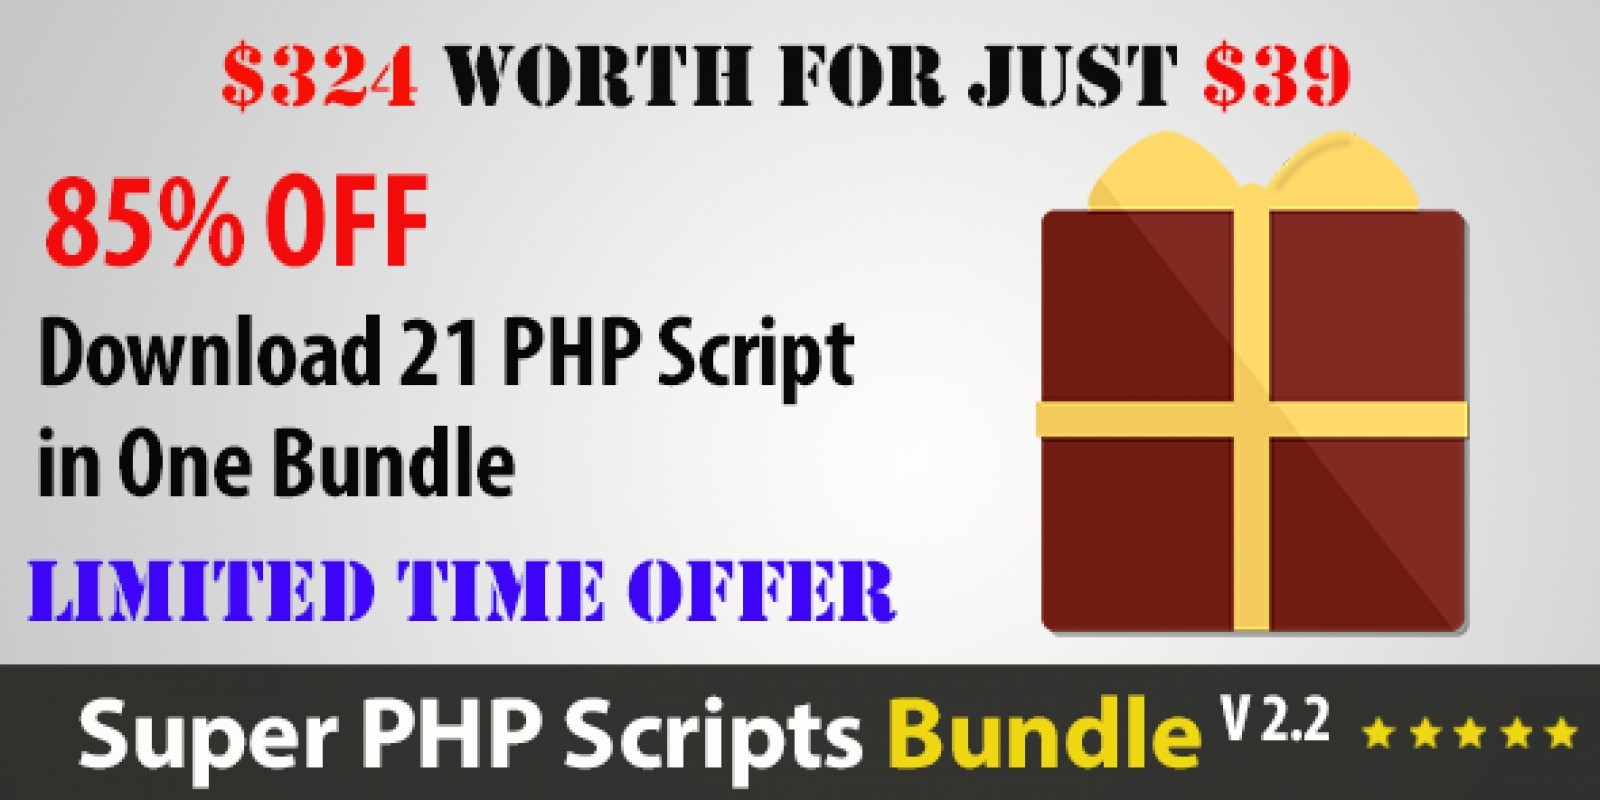 Super PHP Scripts Bundle